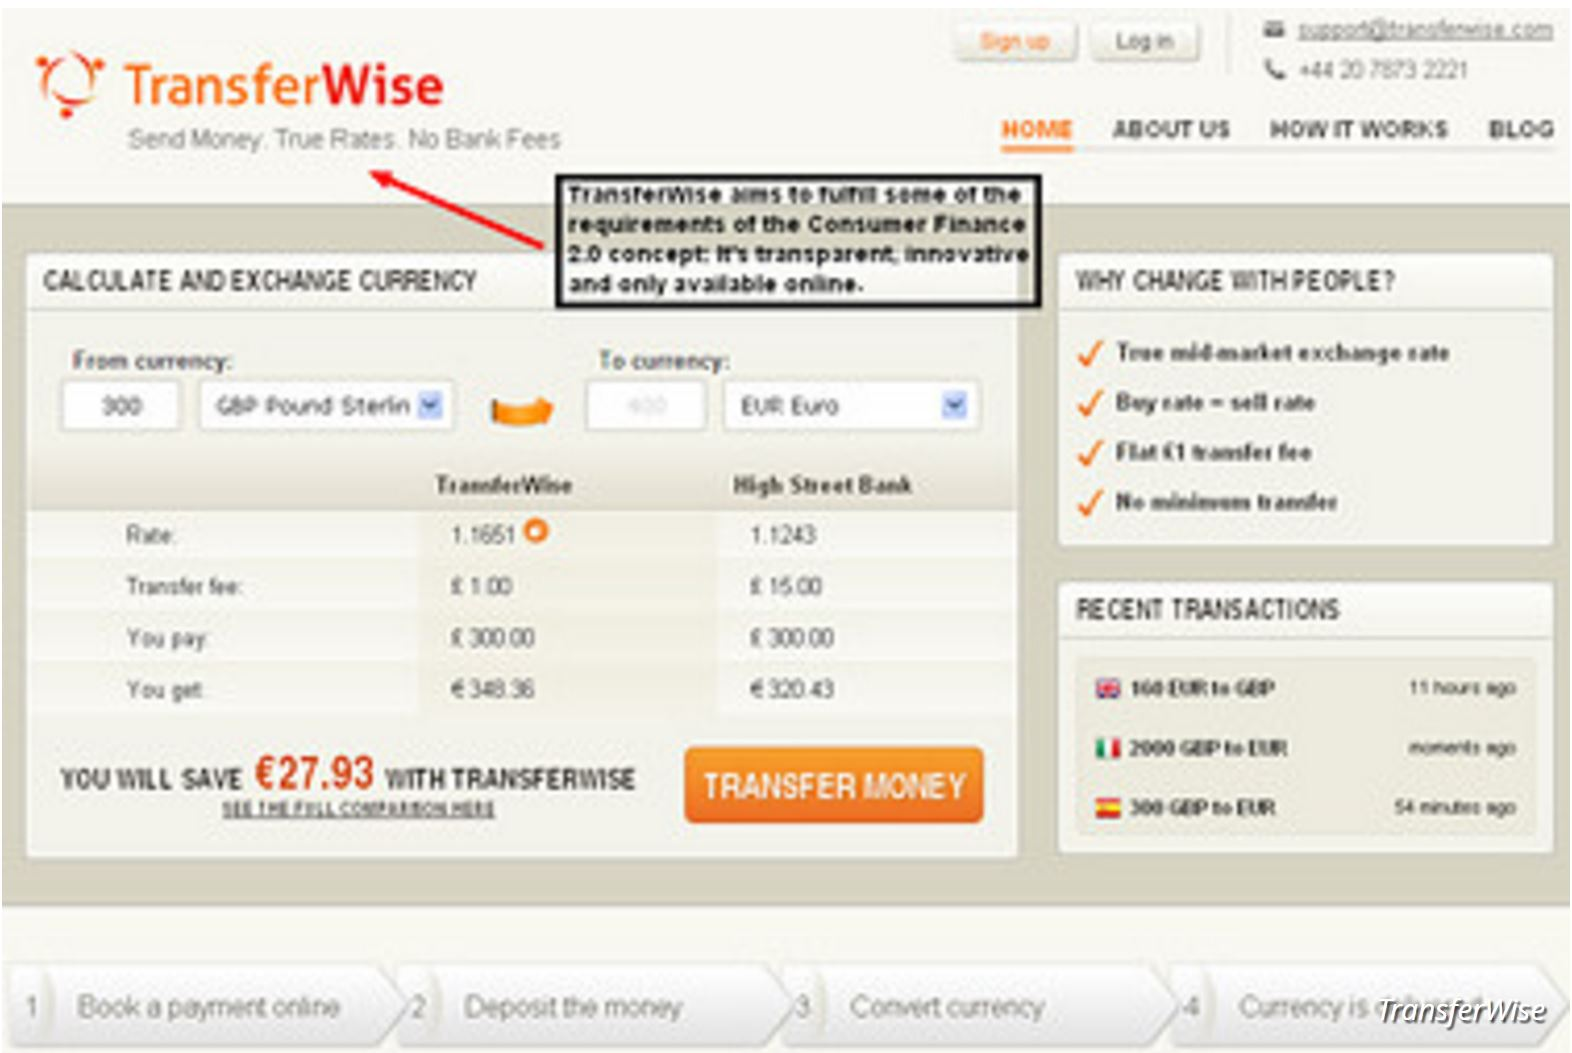 TransferWise front page November 2011